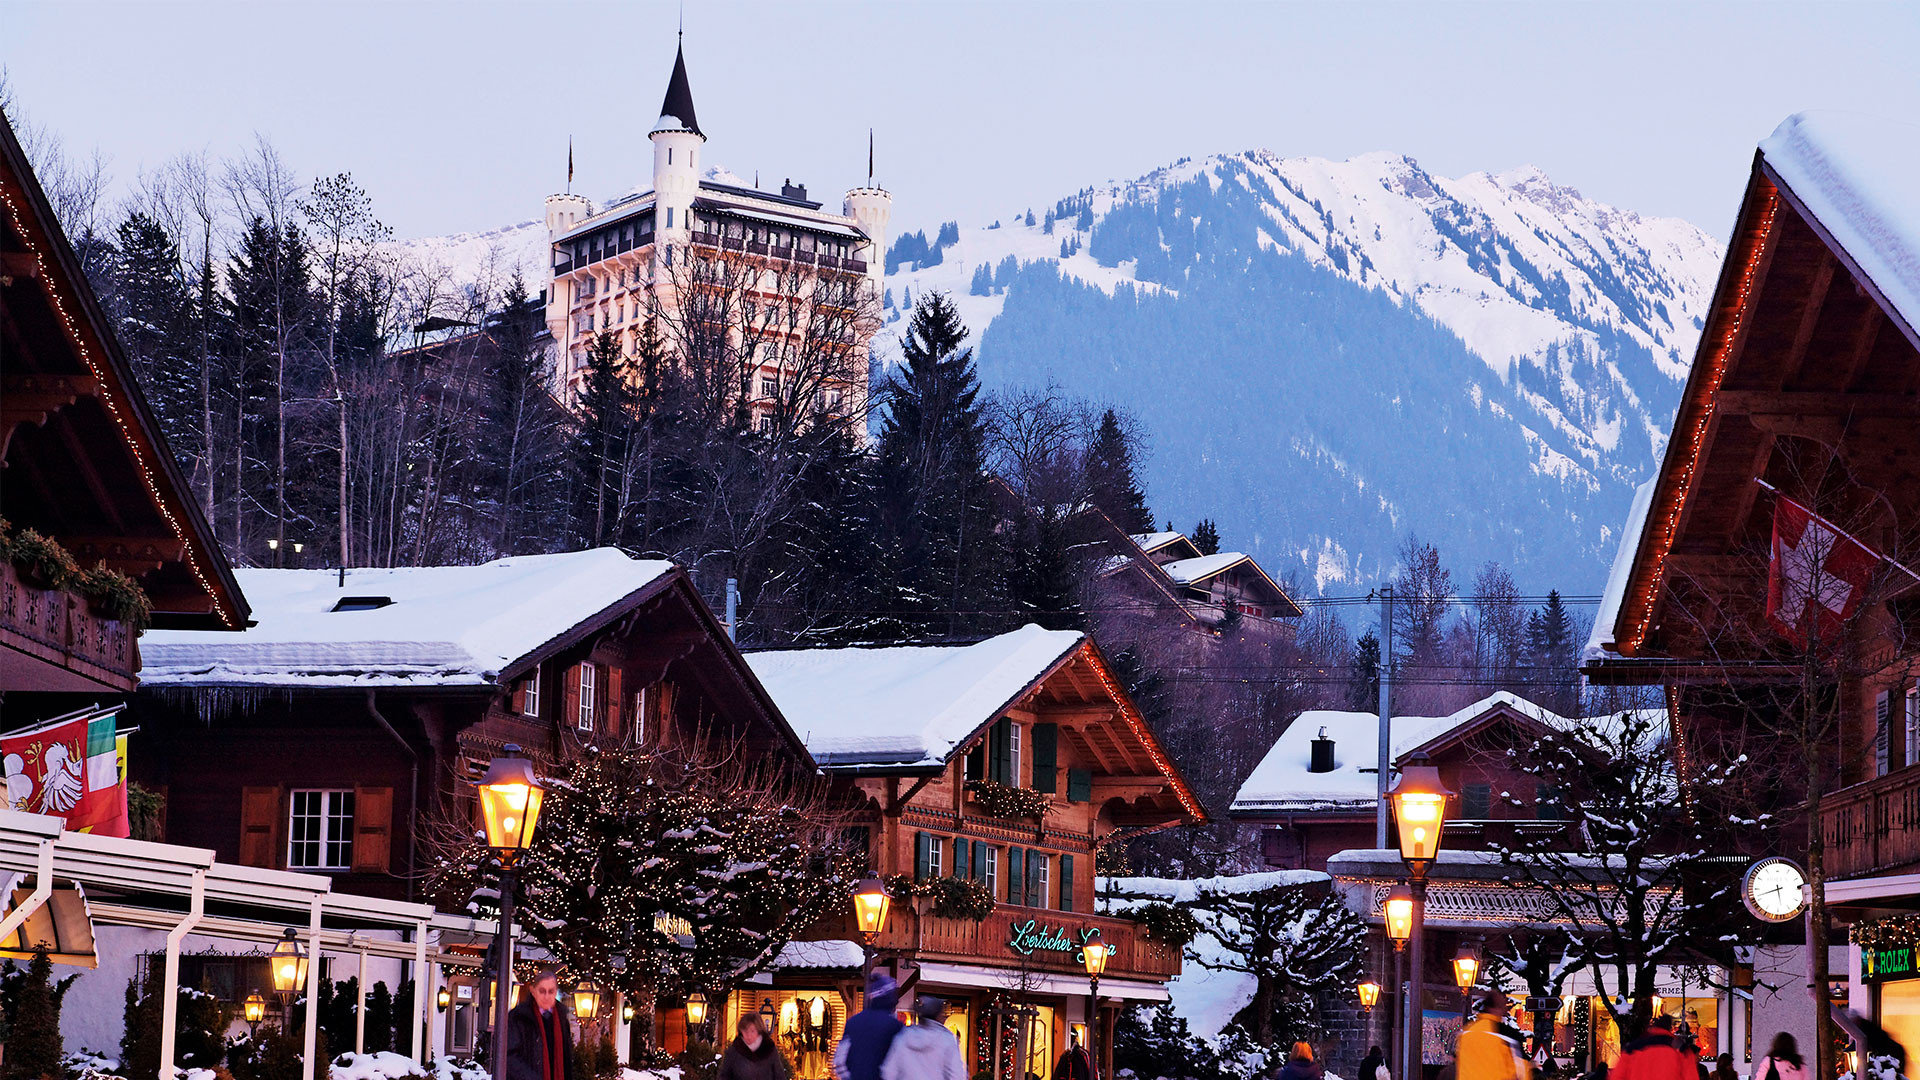 Palace Hotel, Gstaad, Bernese Oberland, Canton of Berne, Switzerland